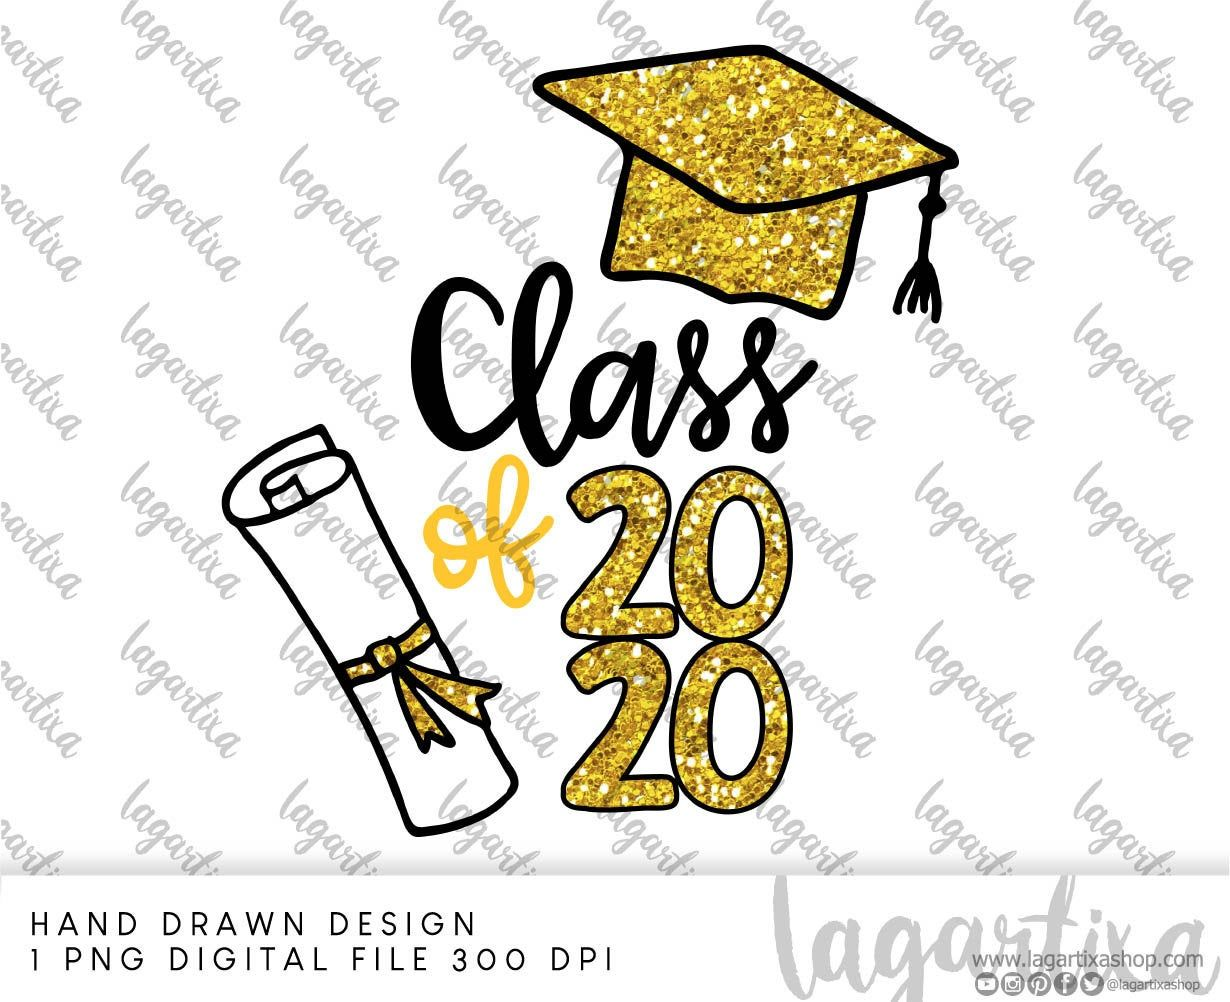 Class Of 2020 Graduation Png Clipart Digital File For Etsy Black Decorations Graduation Design How To Draw Hands